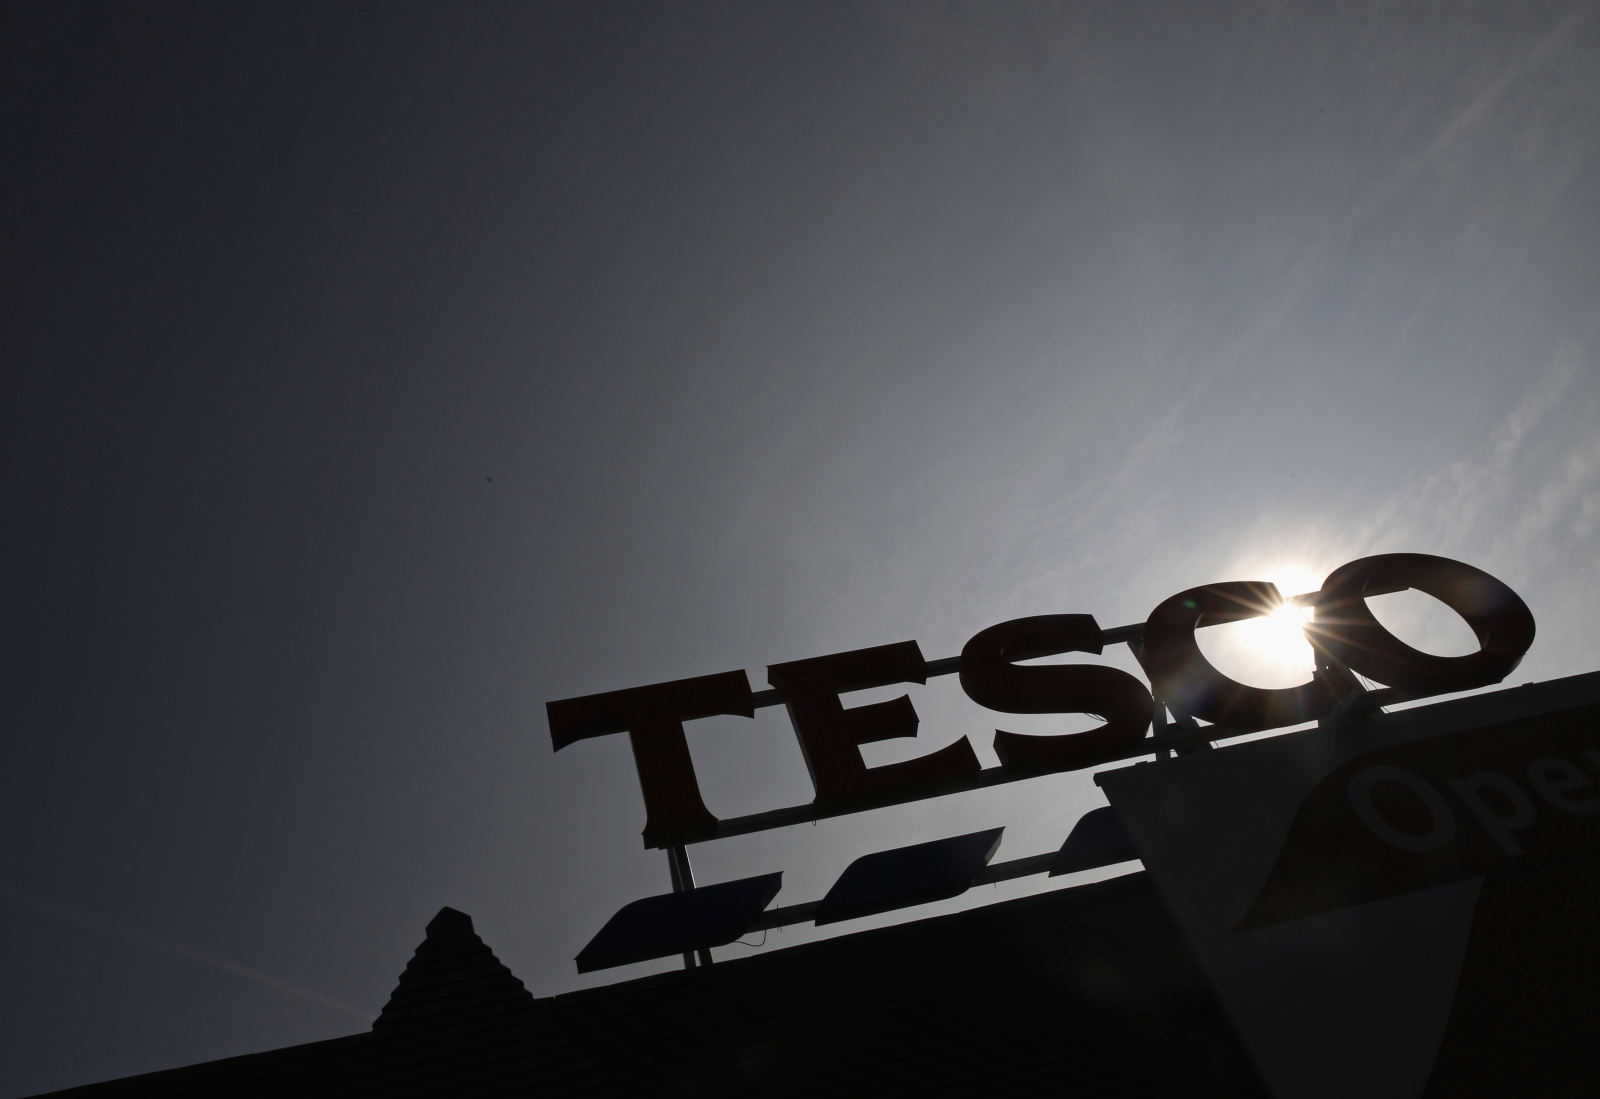 Tesco Boss Dave Lewis to Provide Impact of Accounting Blunder Next Week